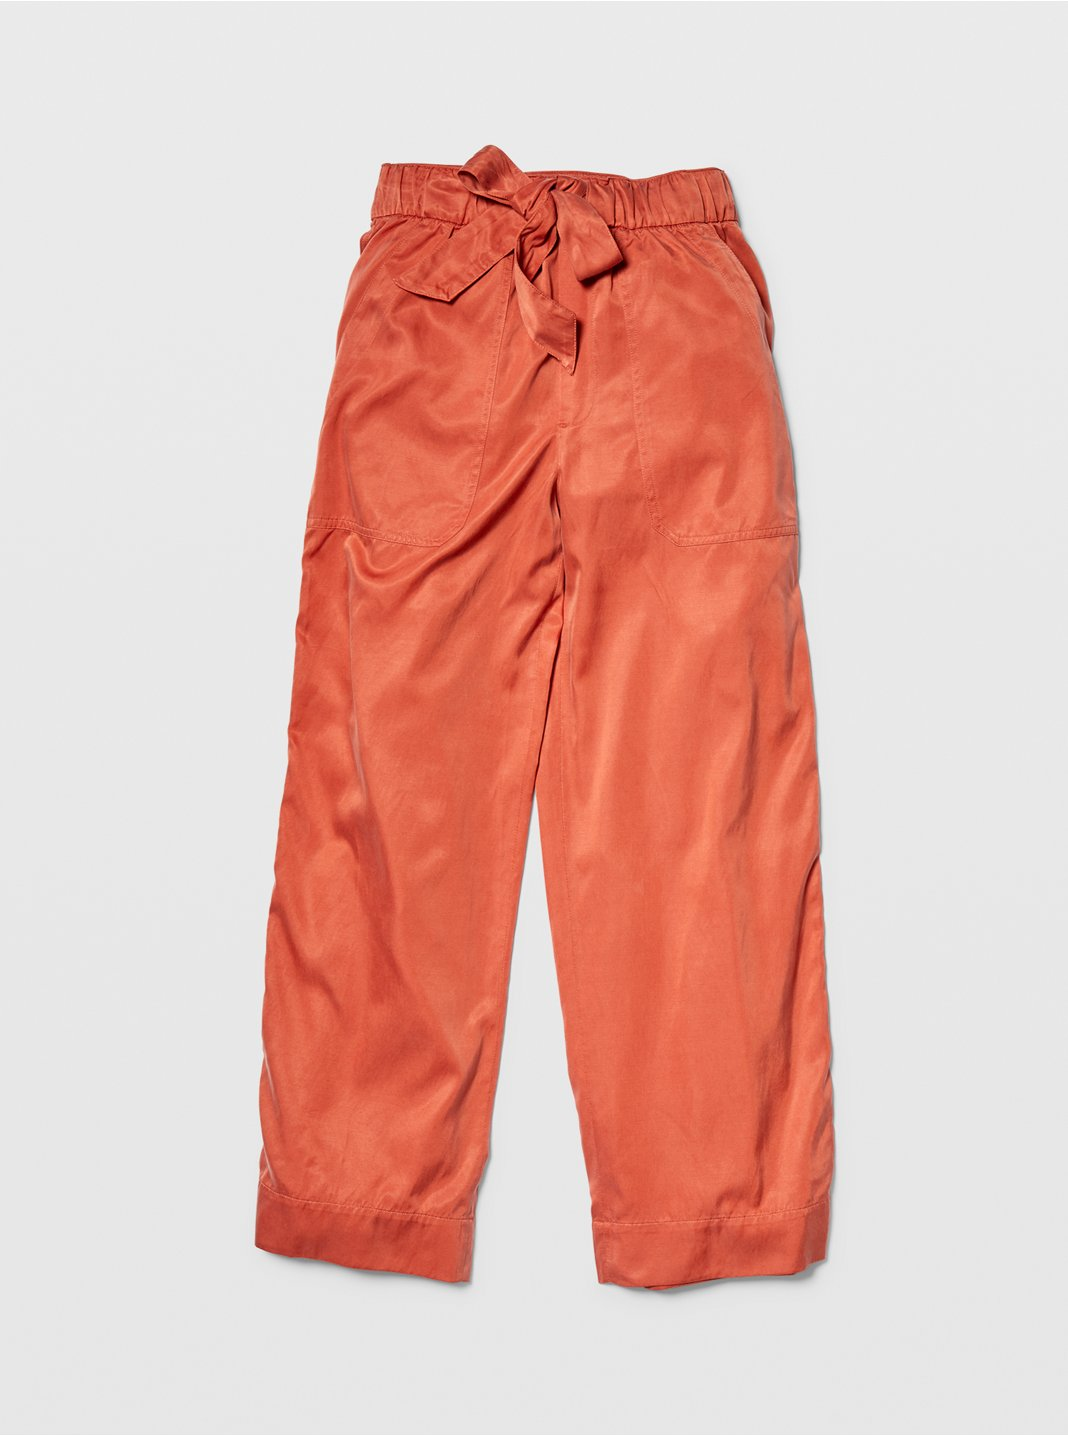 Belted Pull-On Pants